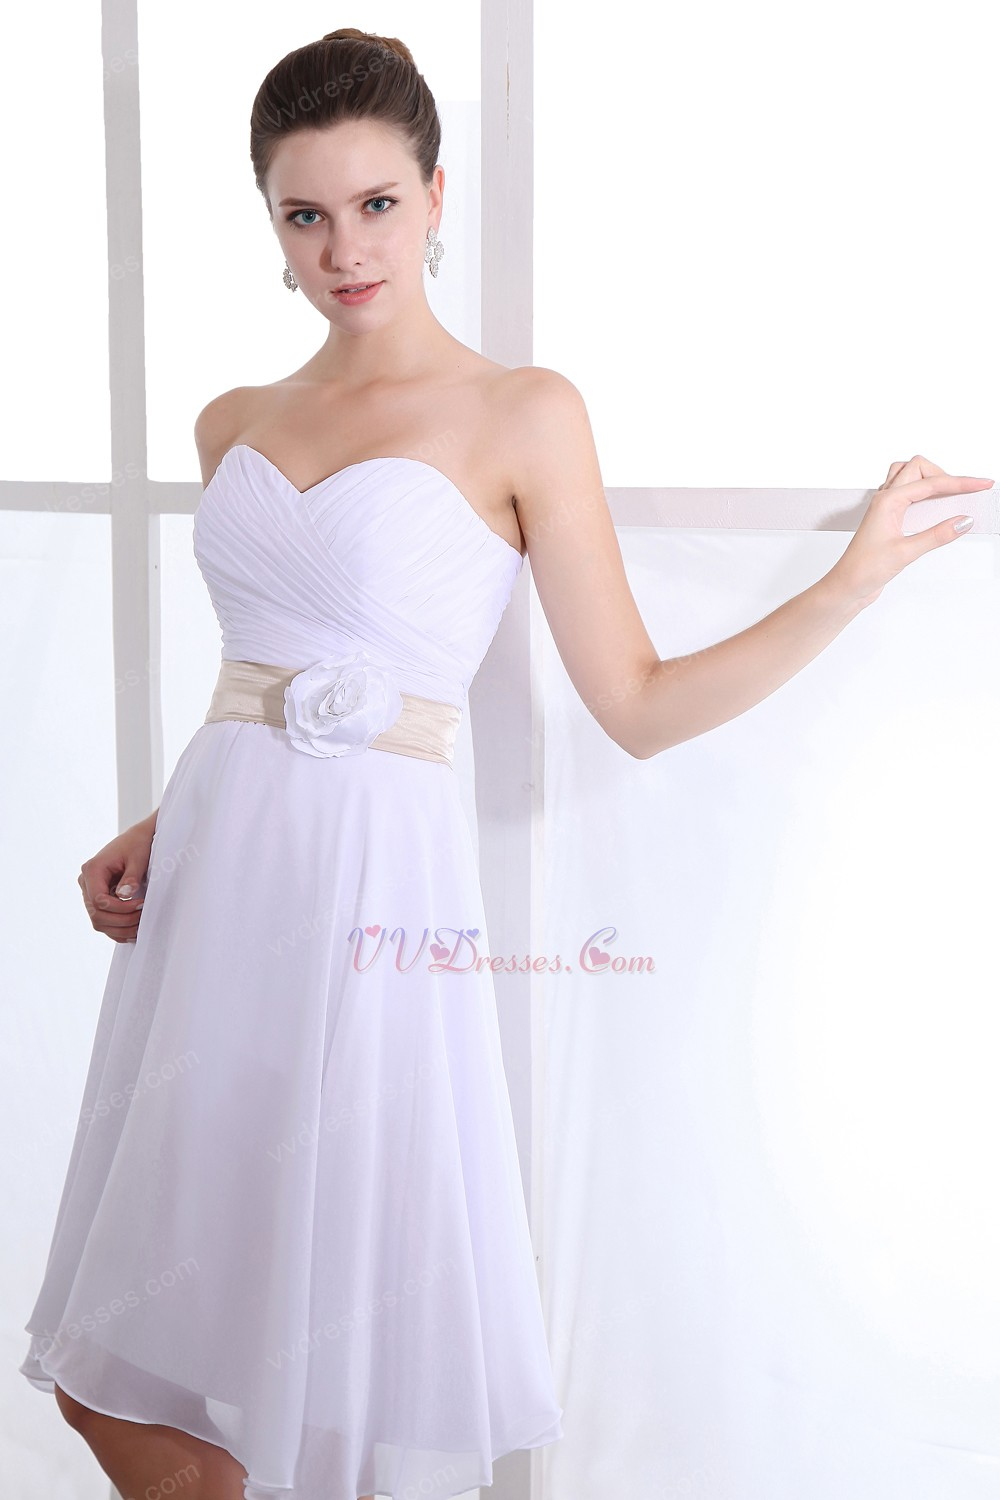 White Dresses: White Dresses Under 100 Dollars